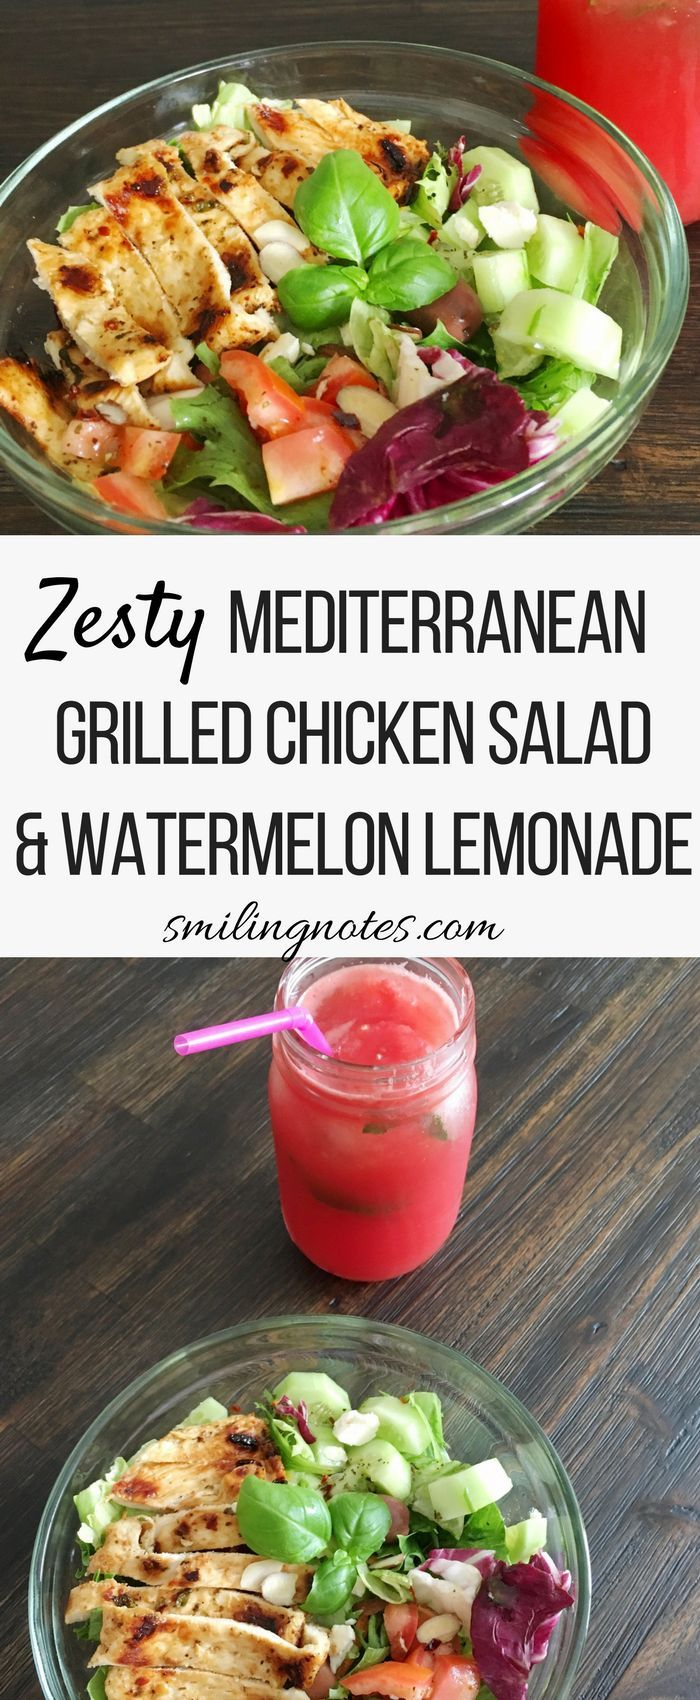 Zesty Mediterranean Grilled Chicken Salad and watermelon lemonade - This Zesty Mediterranean Grilled Chicken Salad is a perfectly delicious meal and surprisingly simple to make. Pair it with a delicious watermelon lemonade and mealtime just got super delicious #ExperienceScrubDots #ad